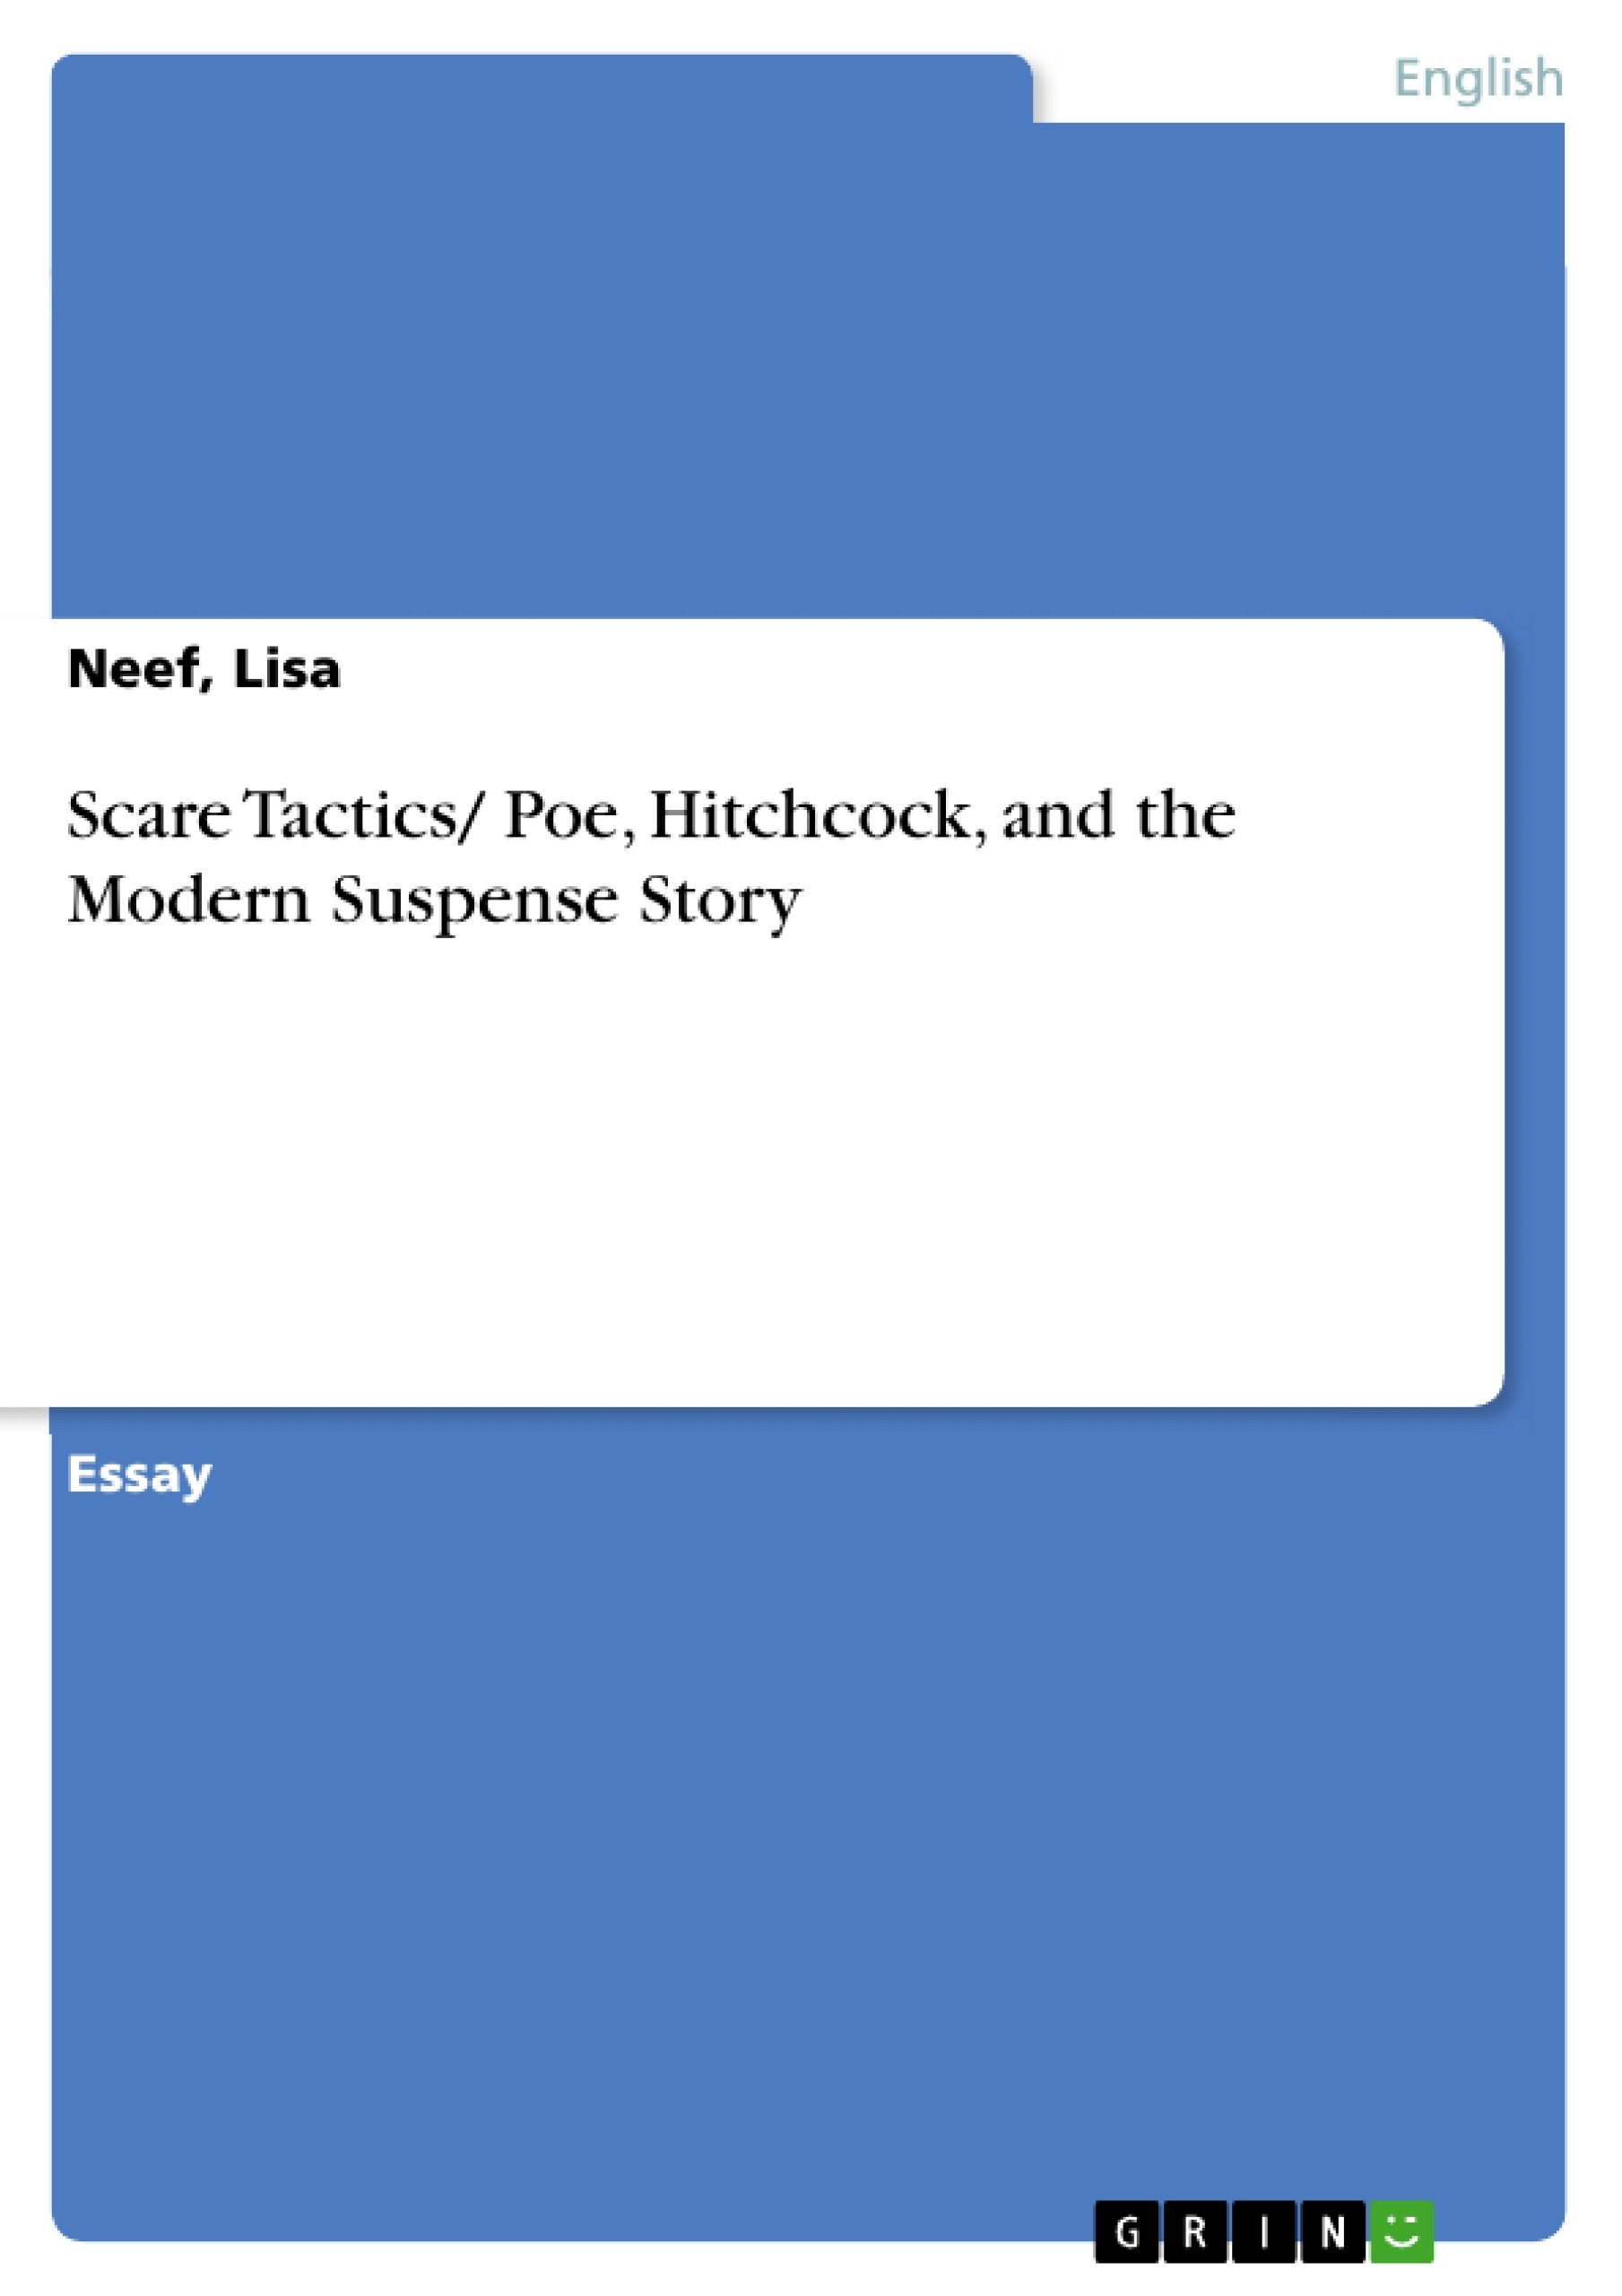 Title: Scare Tactics/ Poe, Hitchcock, and the Modern Suspense Story